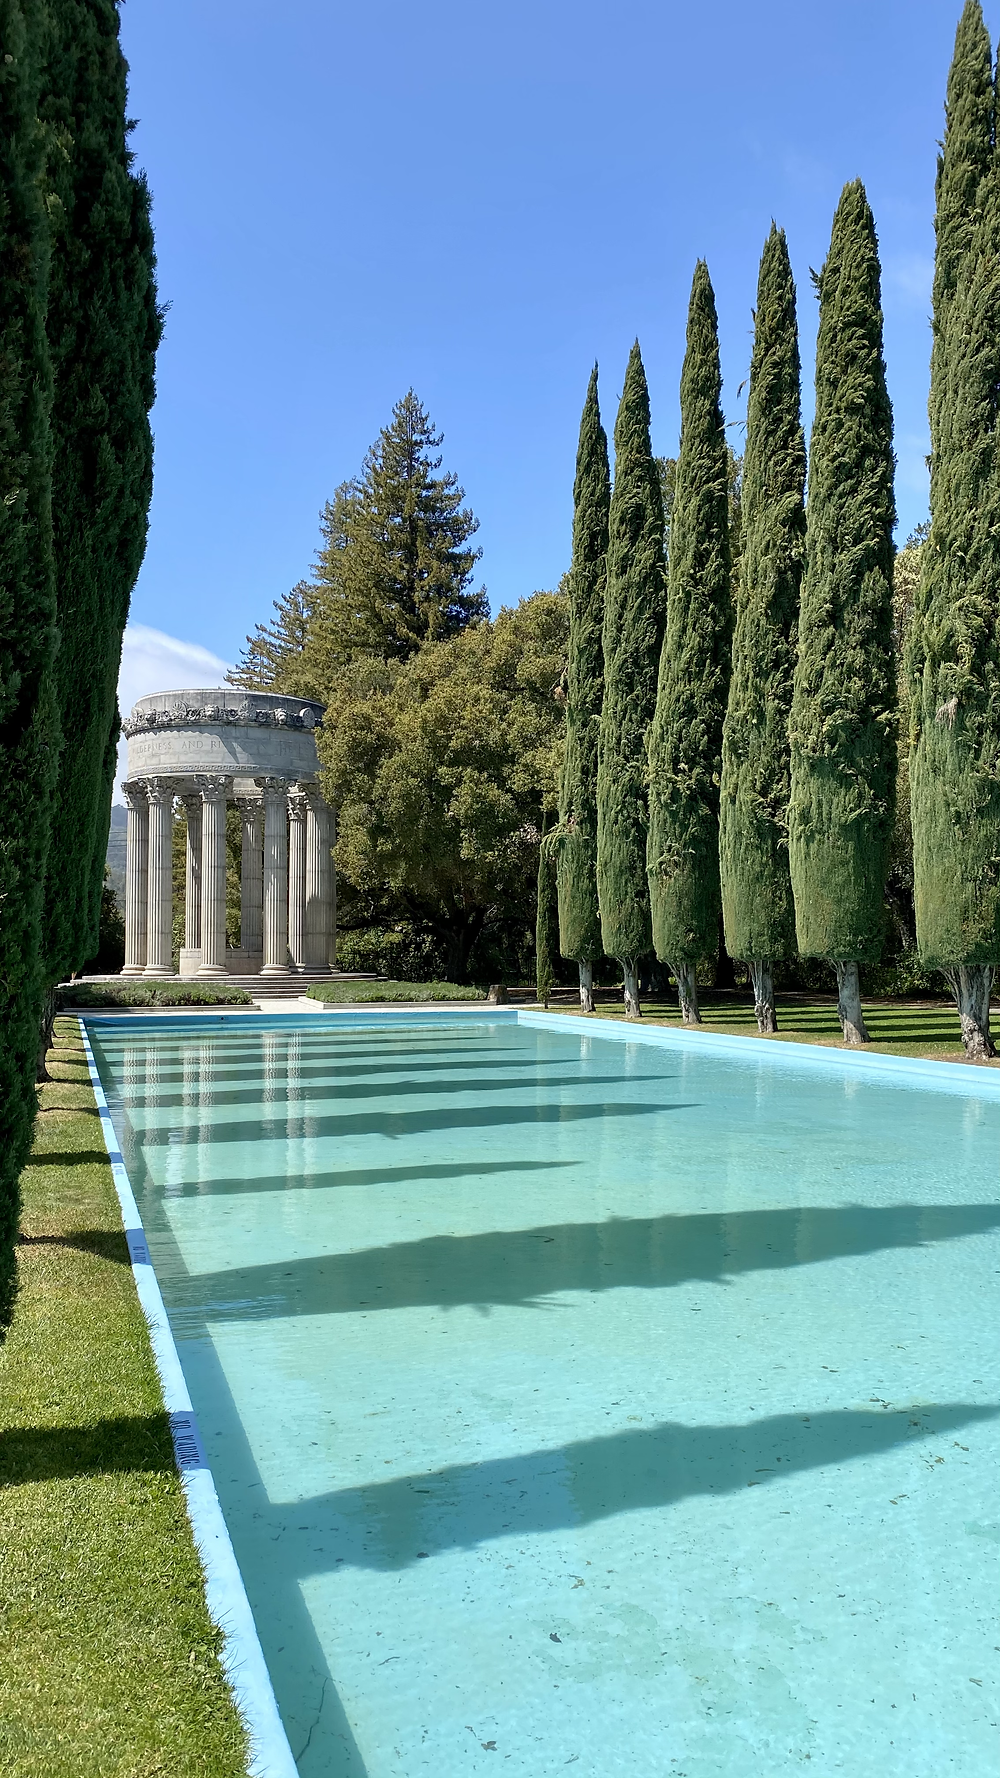 The Pulgas Water Temple in San Mateo County, California